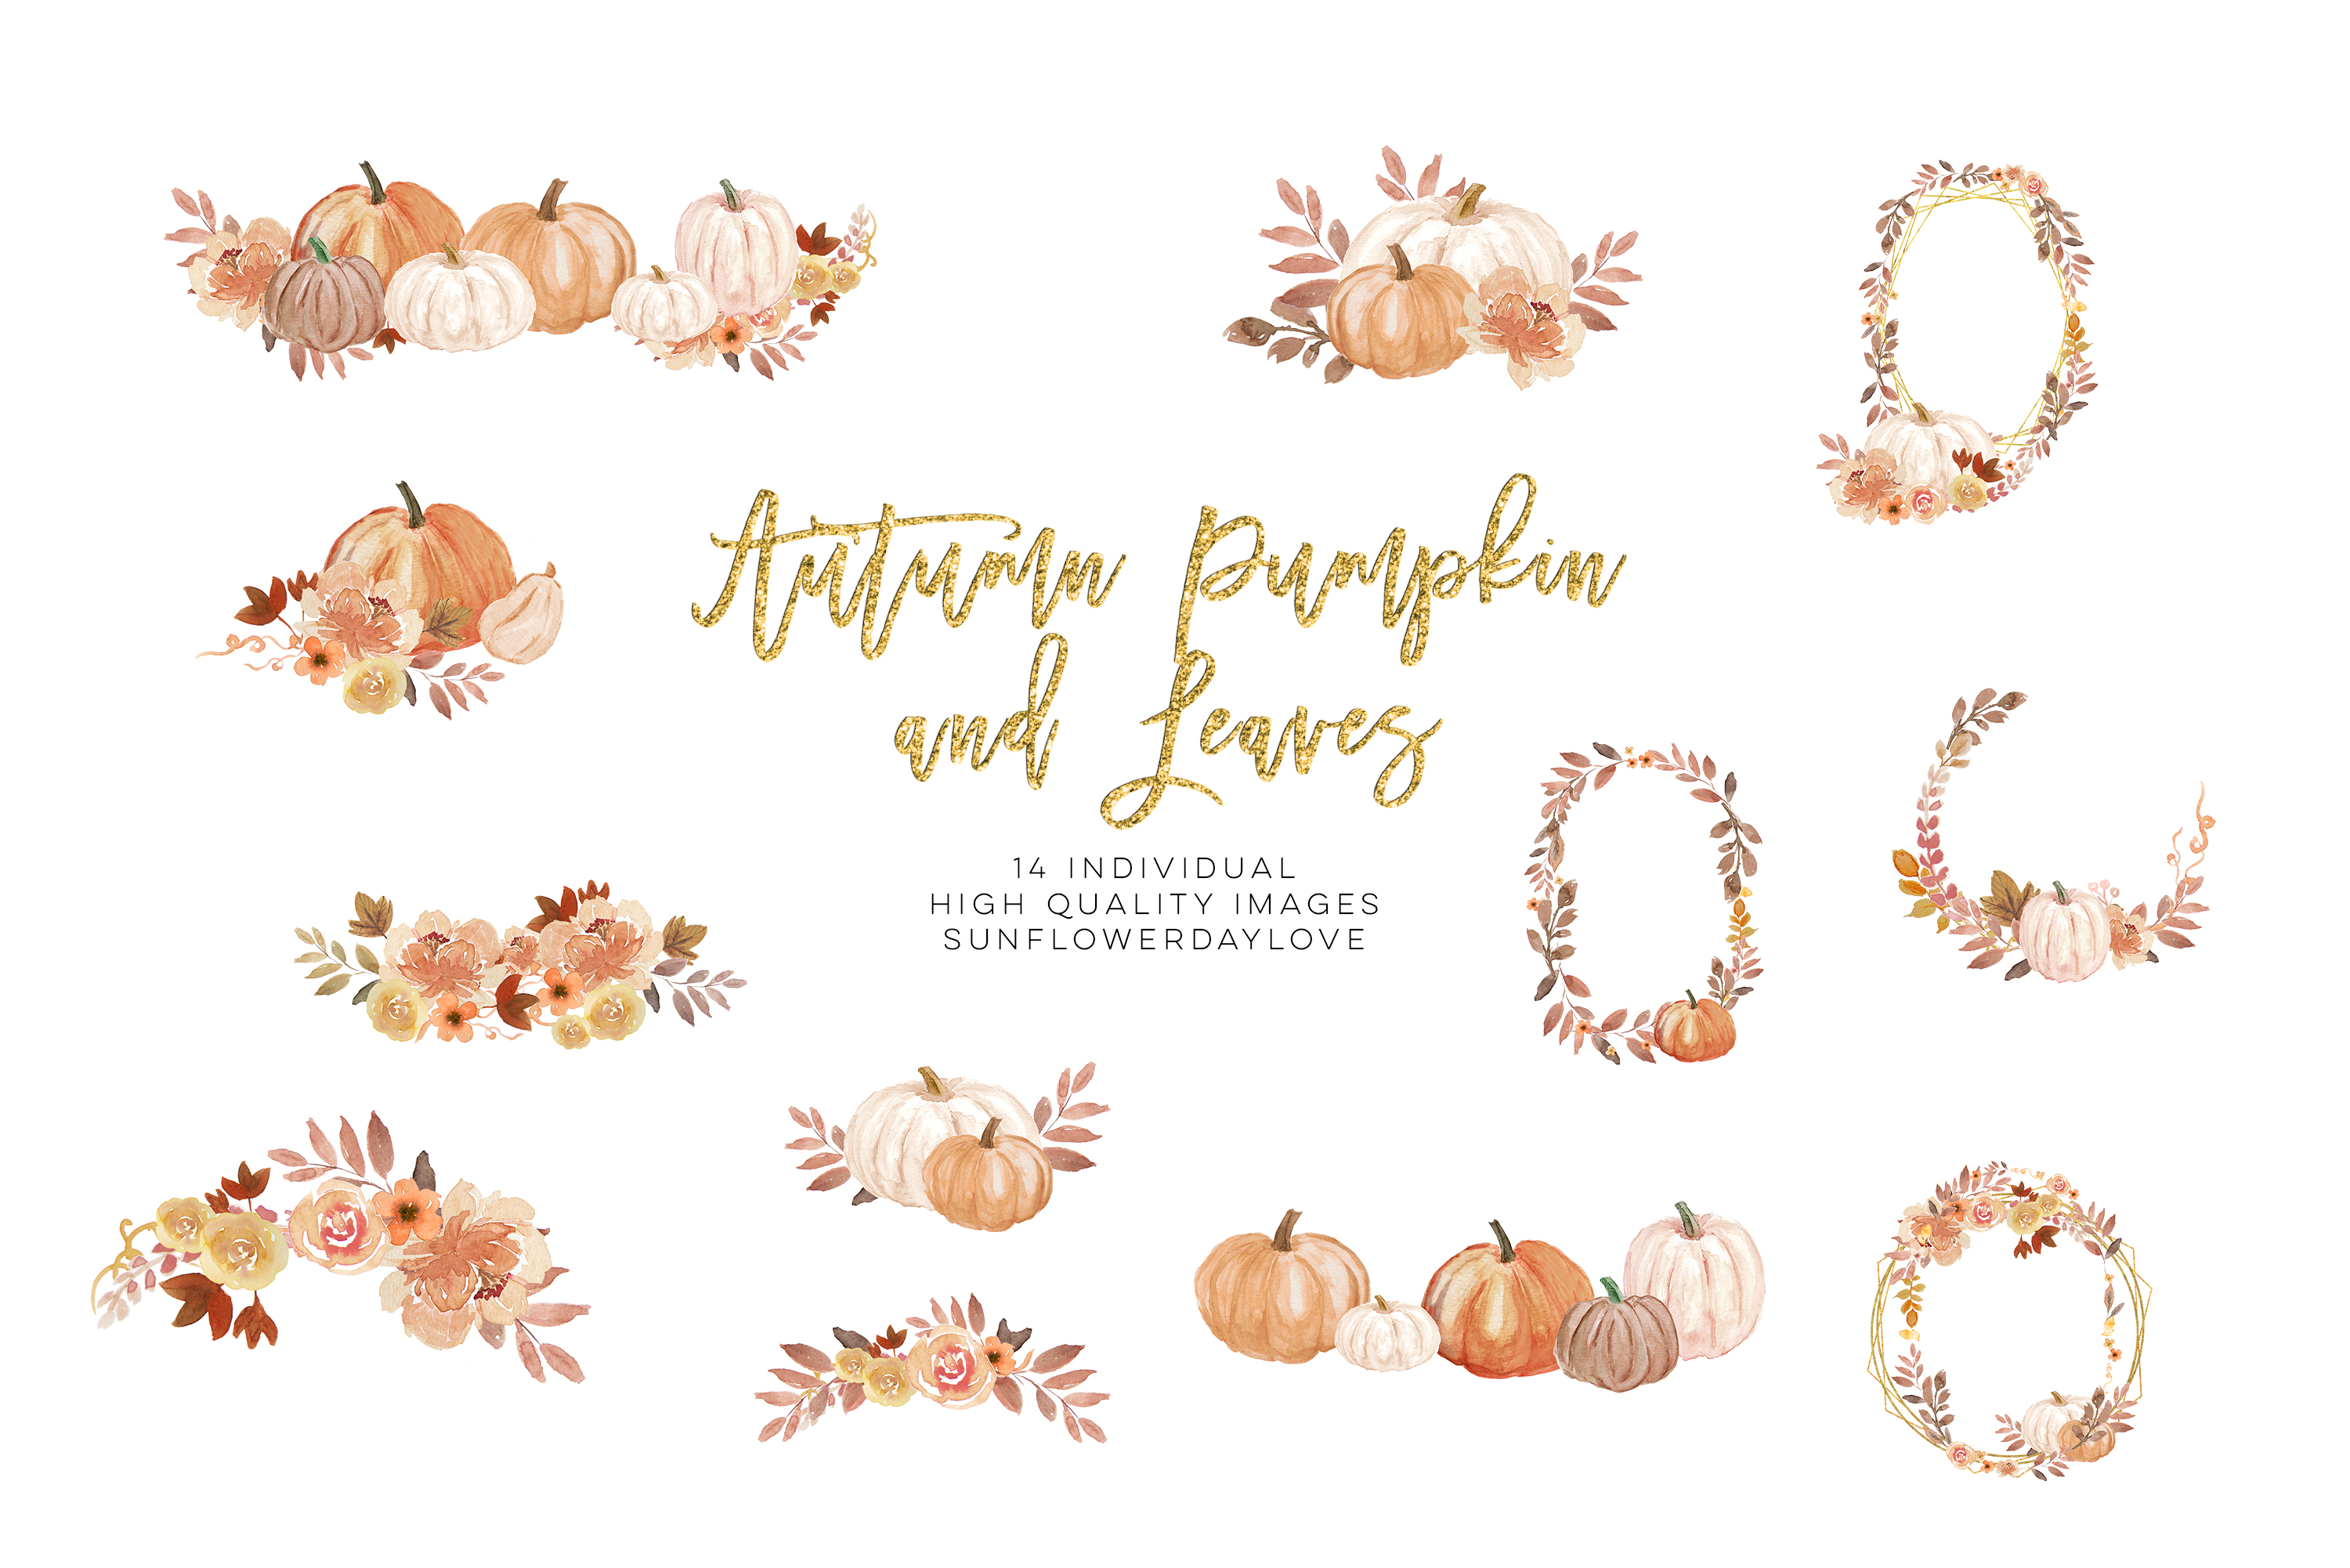 Autumn Wreath Pumpkin and leaves clipart example image 3